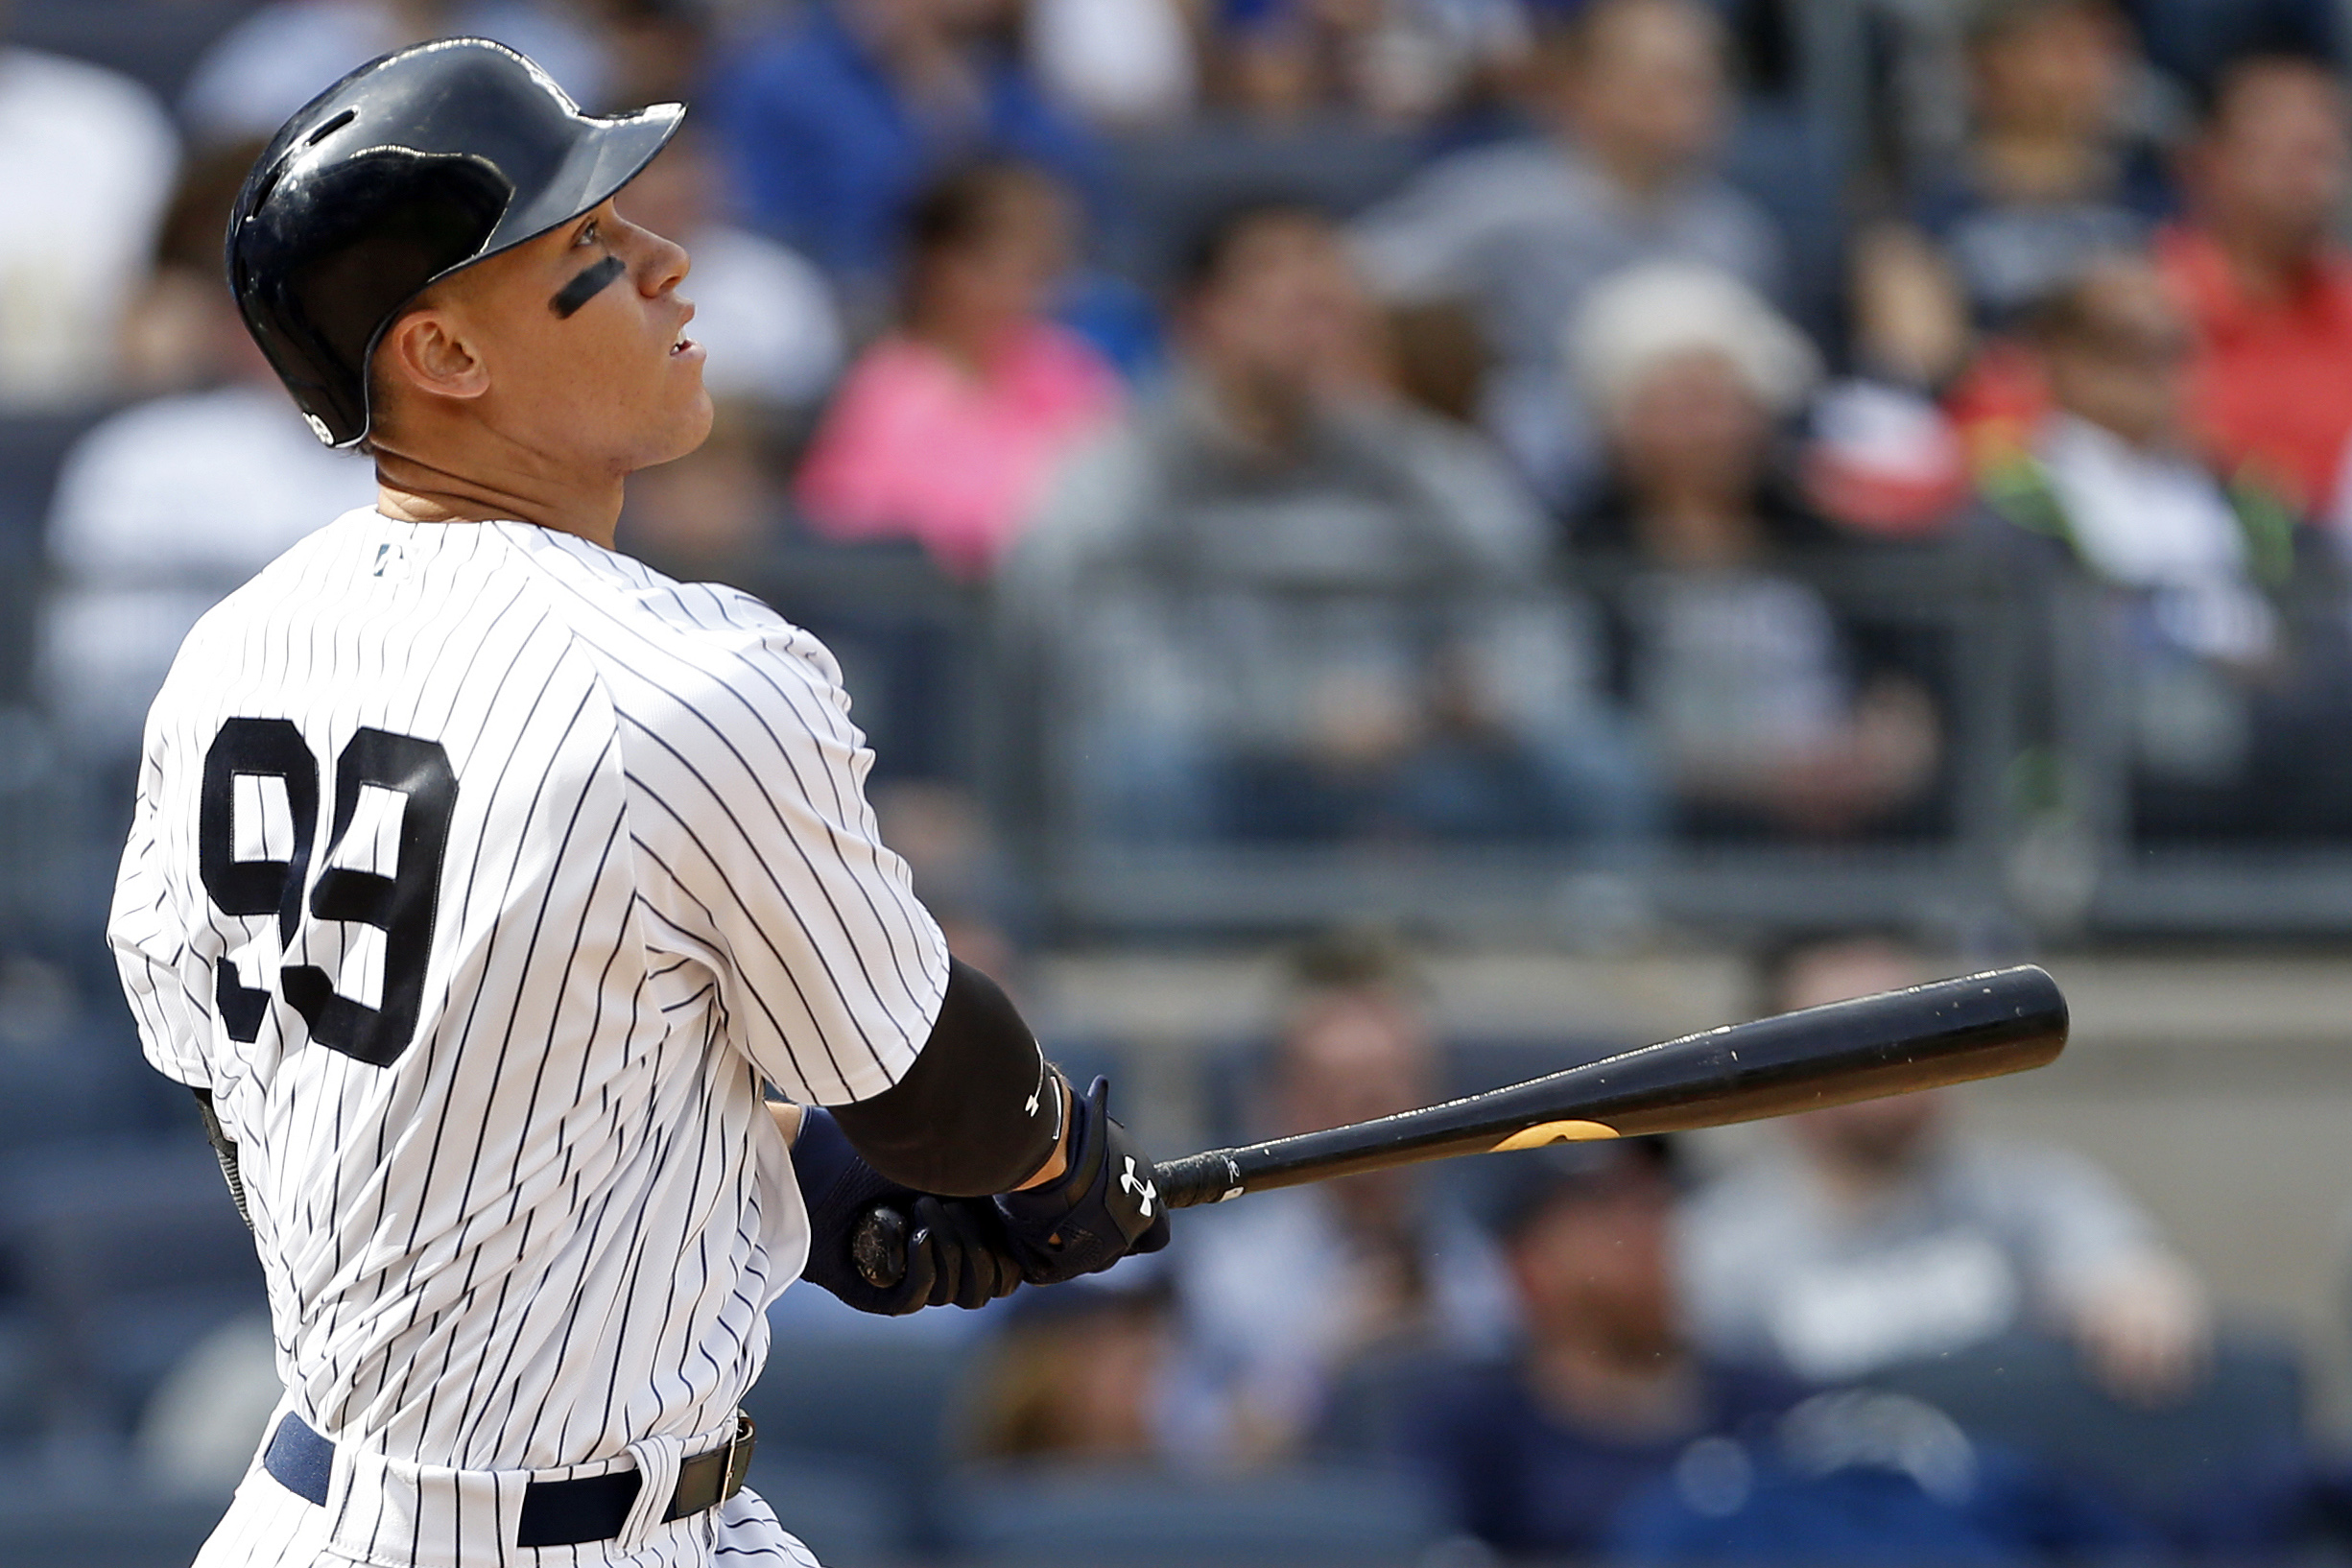 Apr 12, 2017; Bronx, NY, USA; New York Yankees right fielder Aaron Judge (99) watches a two-run home run against the Tampa Bay Rays during the seventh inning at Yankee Stadium. Mandatory Credit: Adam Hunger-USA TODAY Sports